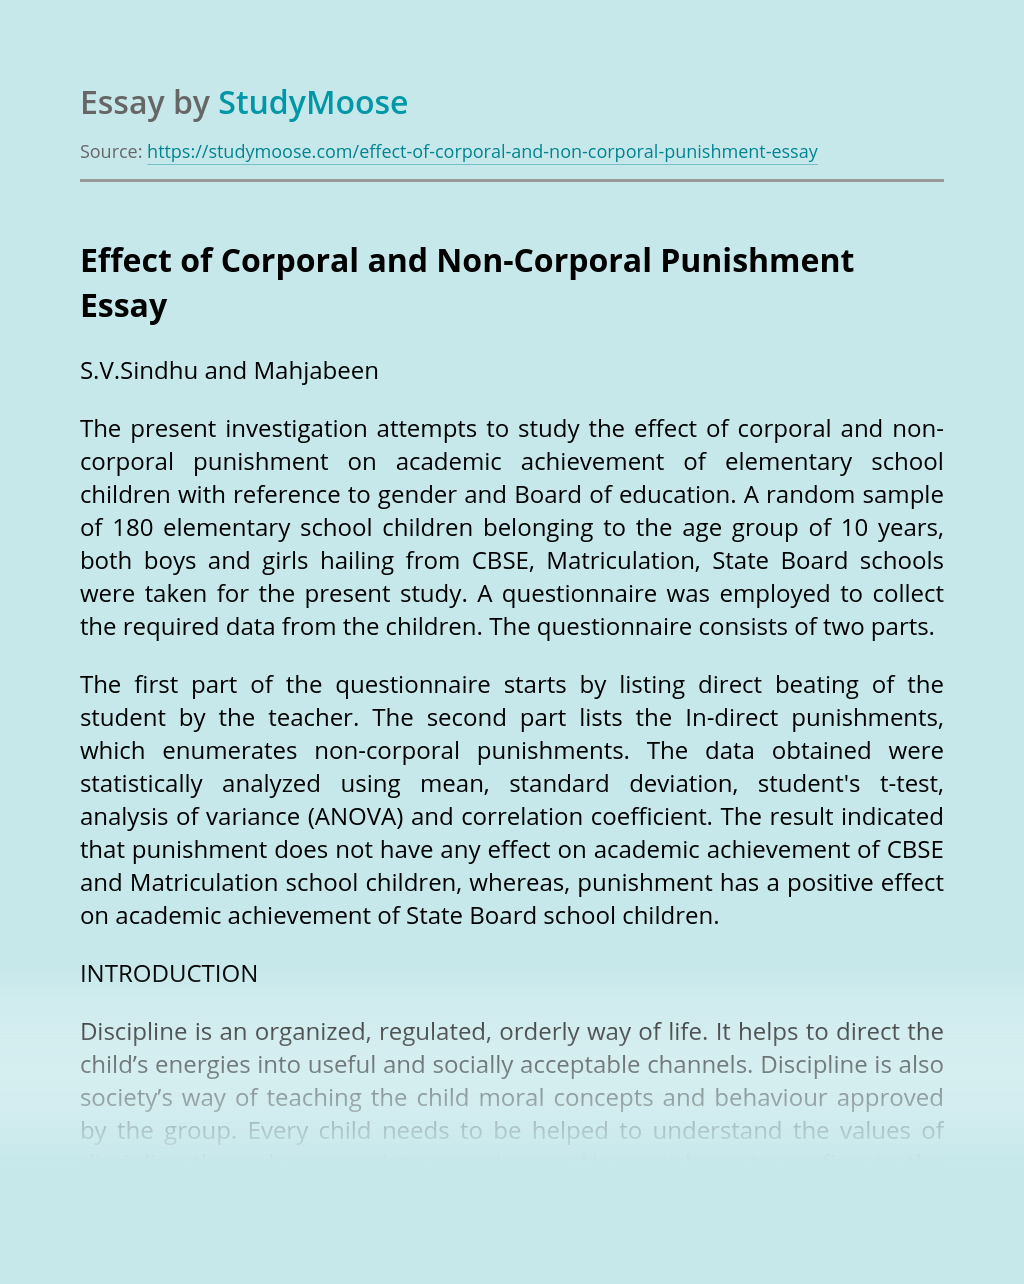 Effect of Corporal and Non-Corporal Punishment